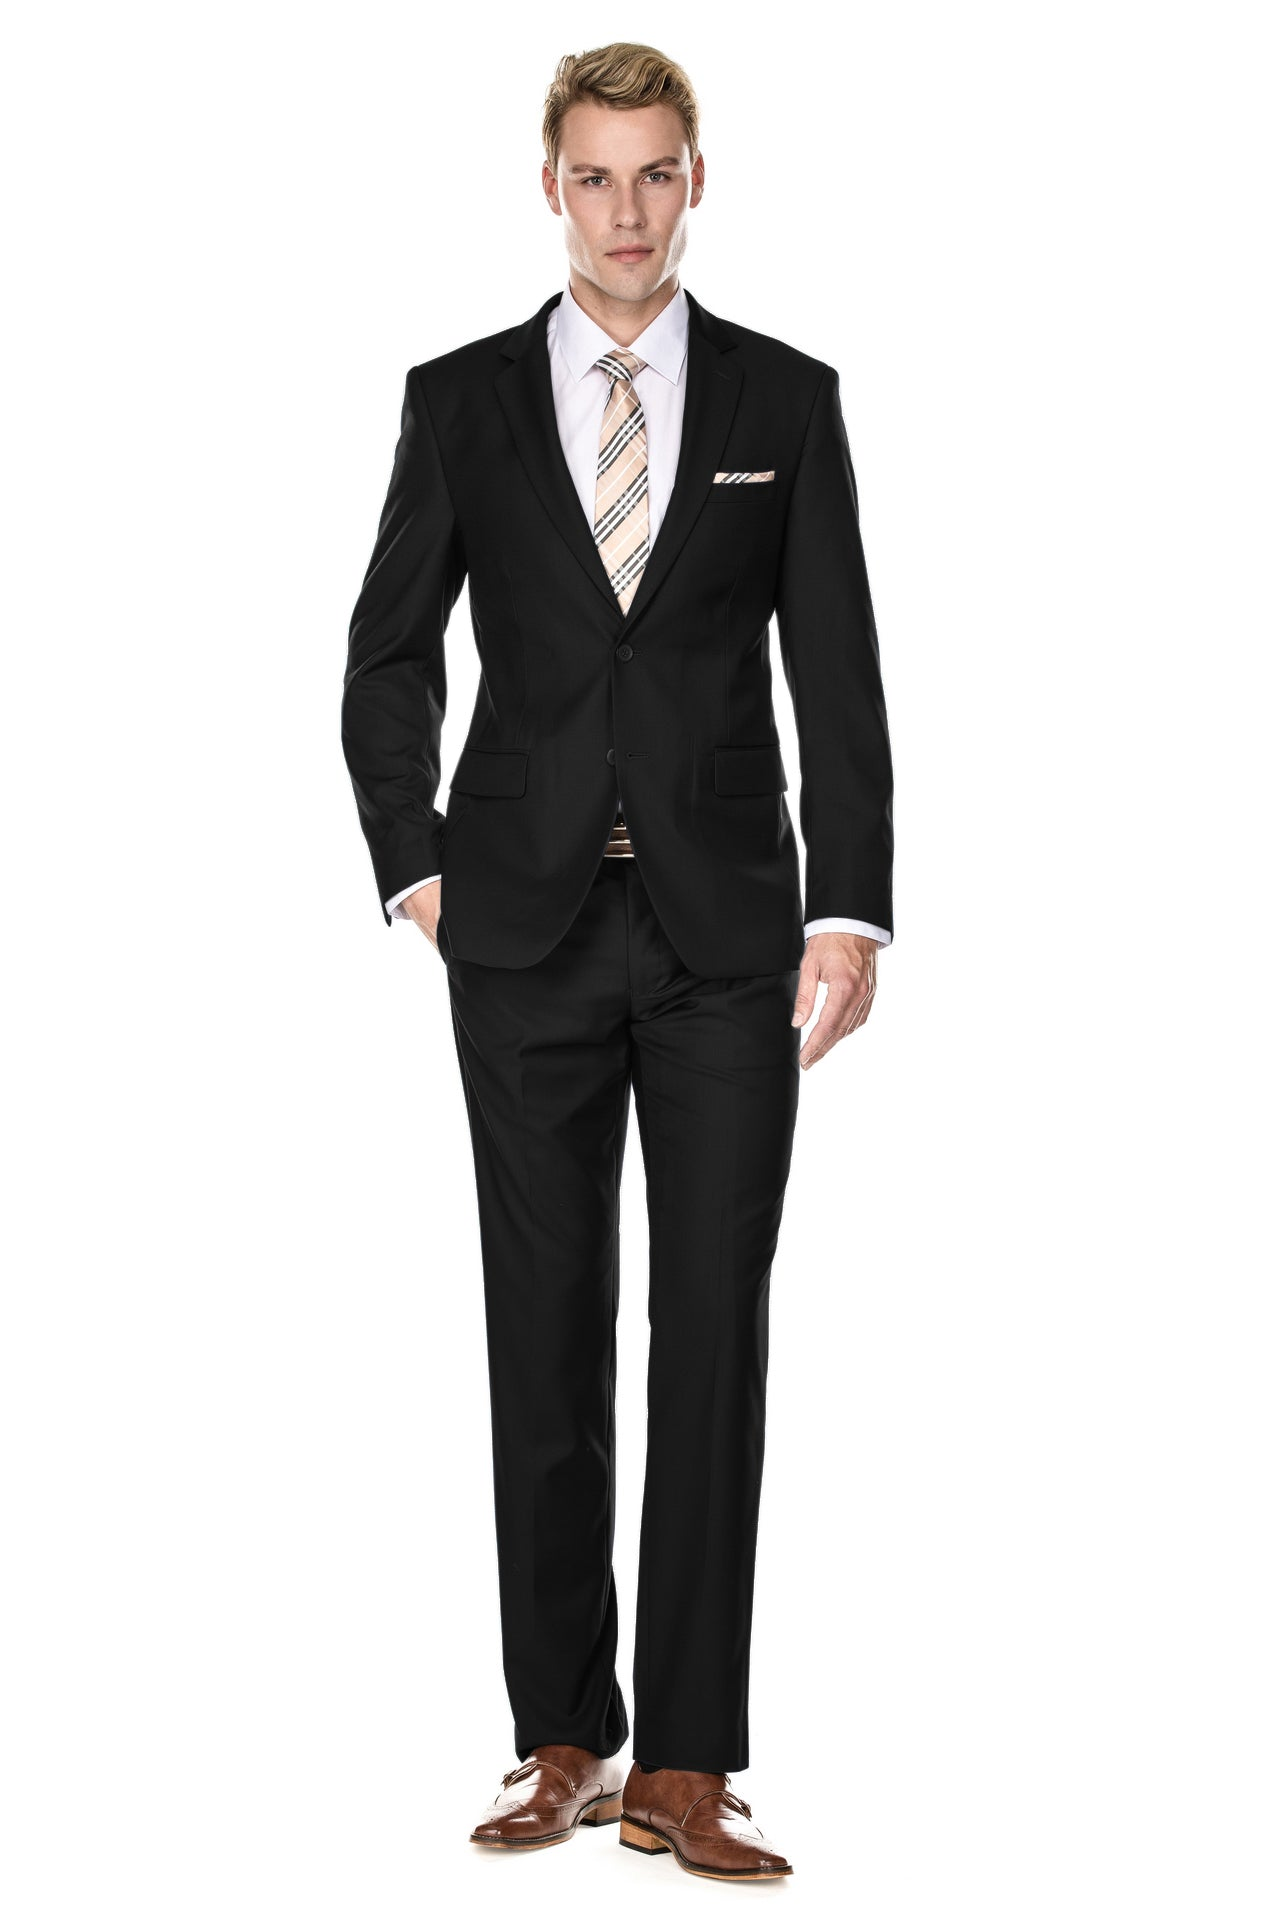 Braveman Men's Classic Fit 2PC Suits - DAILYHAUTE